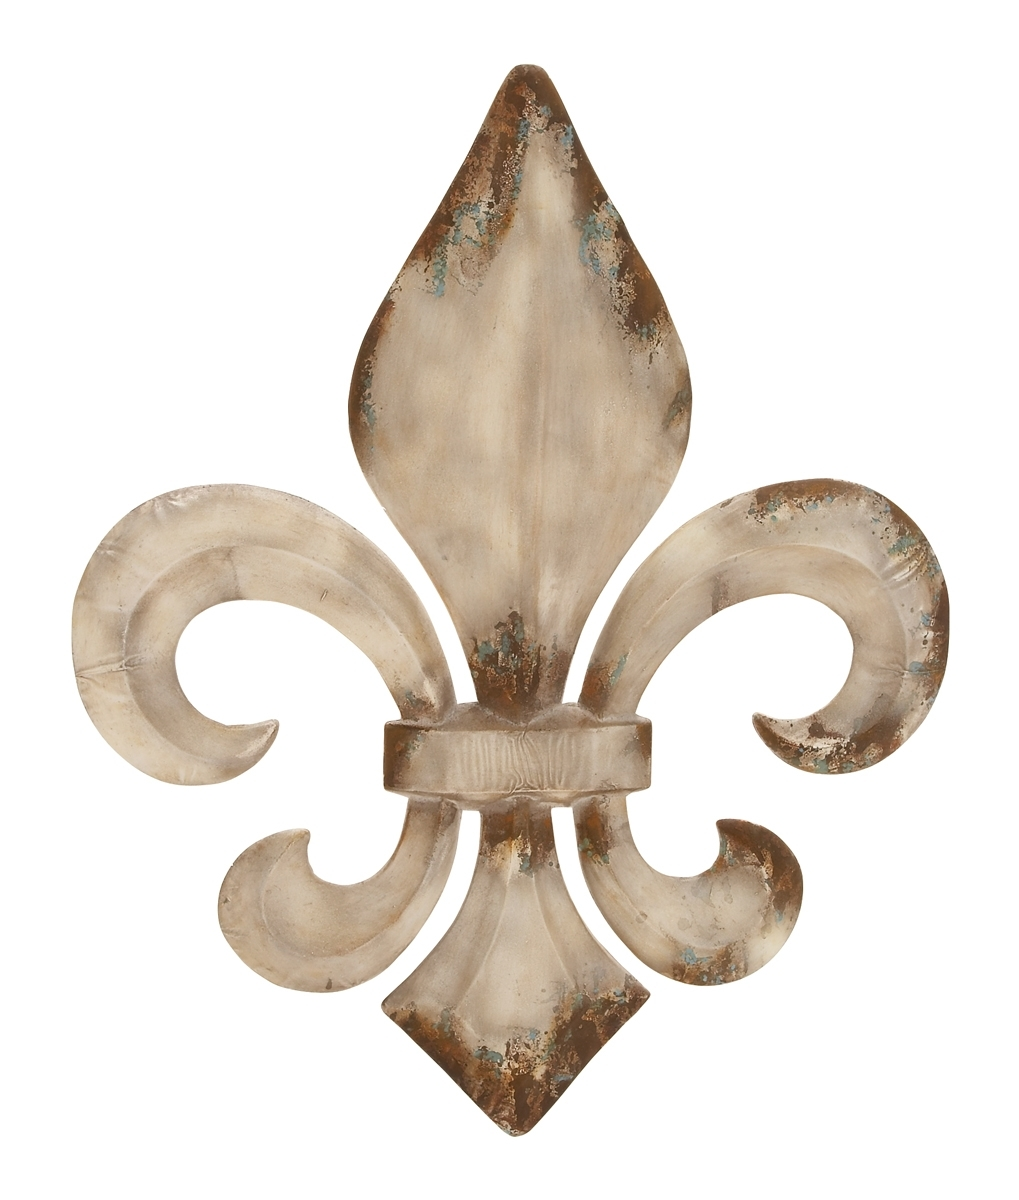 Bronzed Fleur De Lis Wall Decor Throughout Most Recently Released Fleur De Lis Wall Art (View 4 of 20)